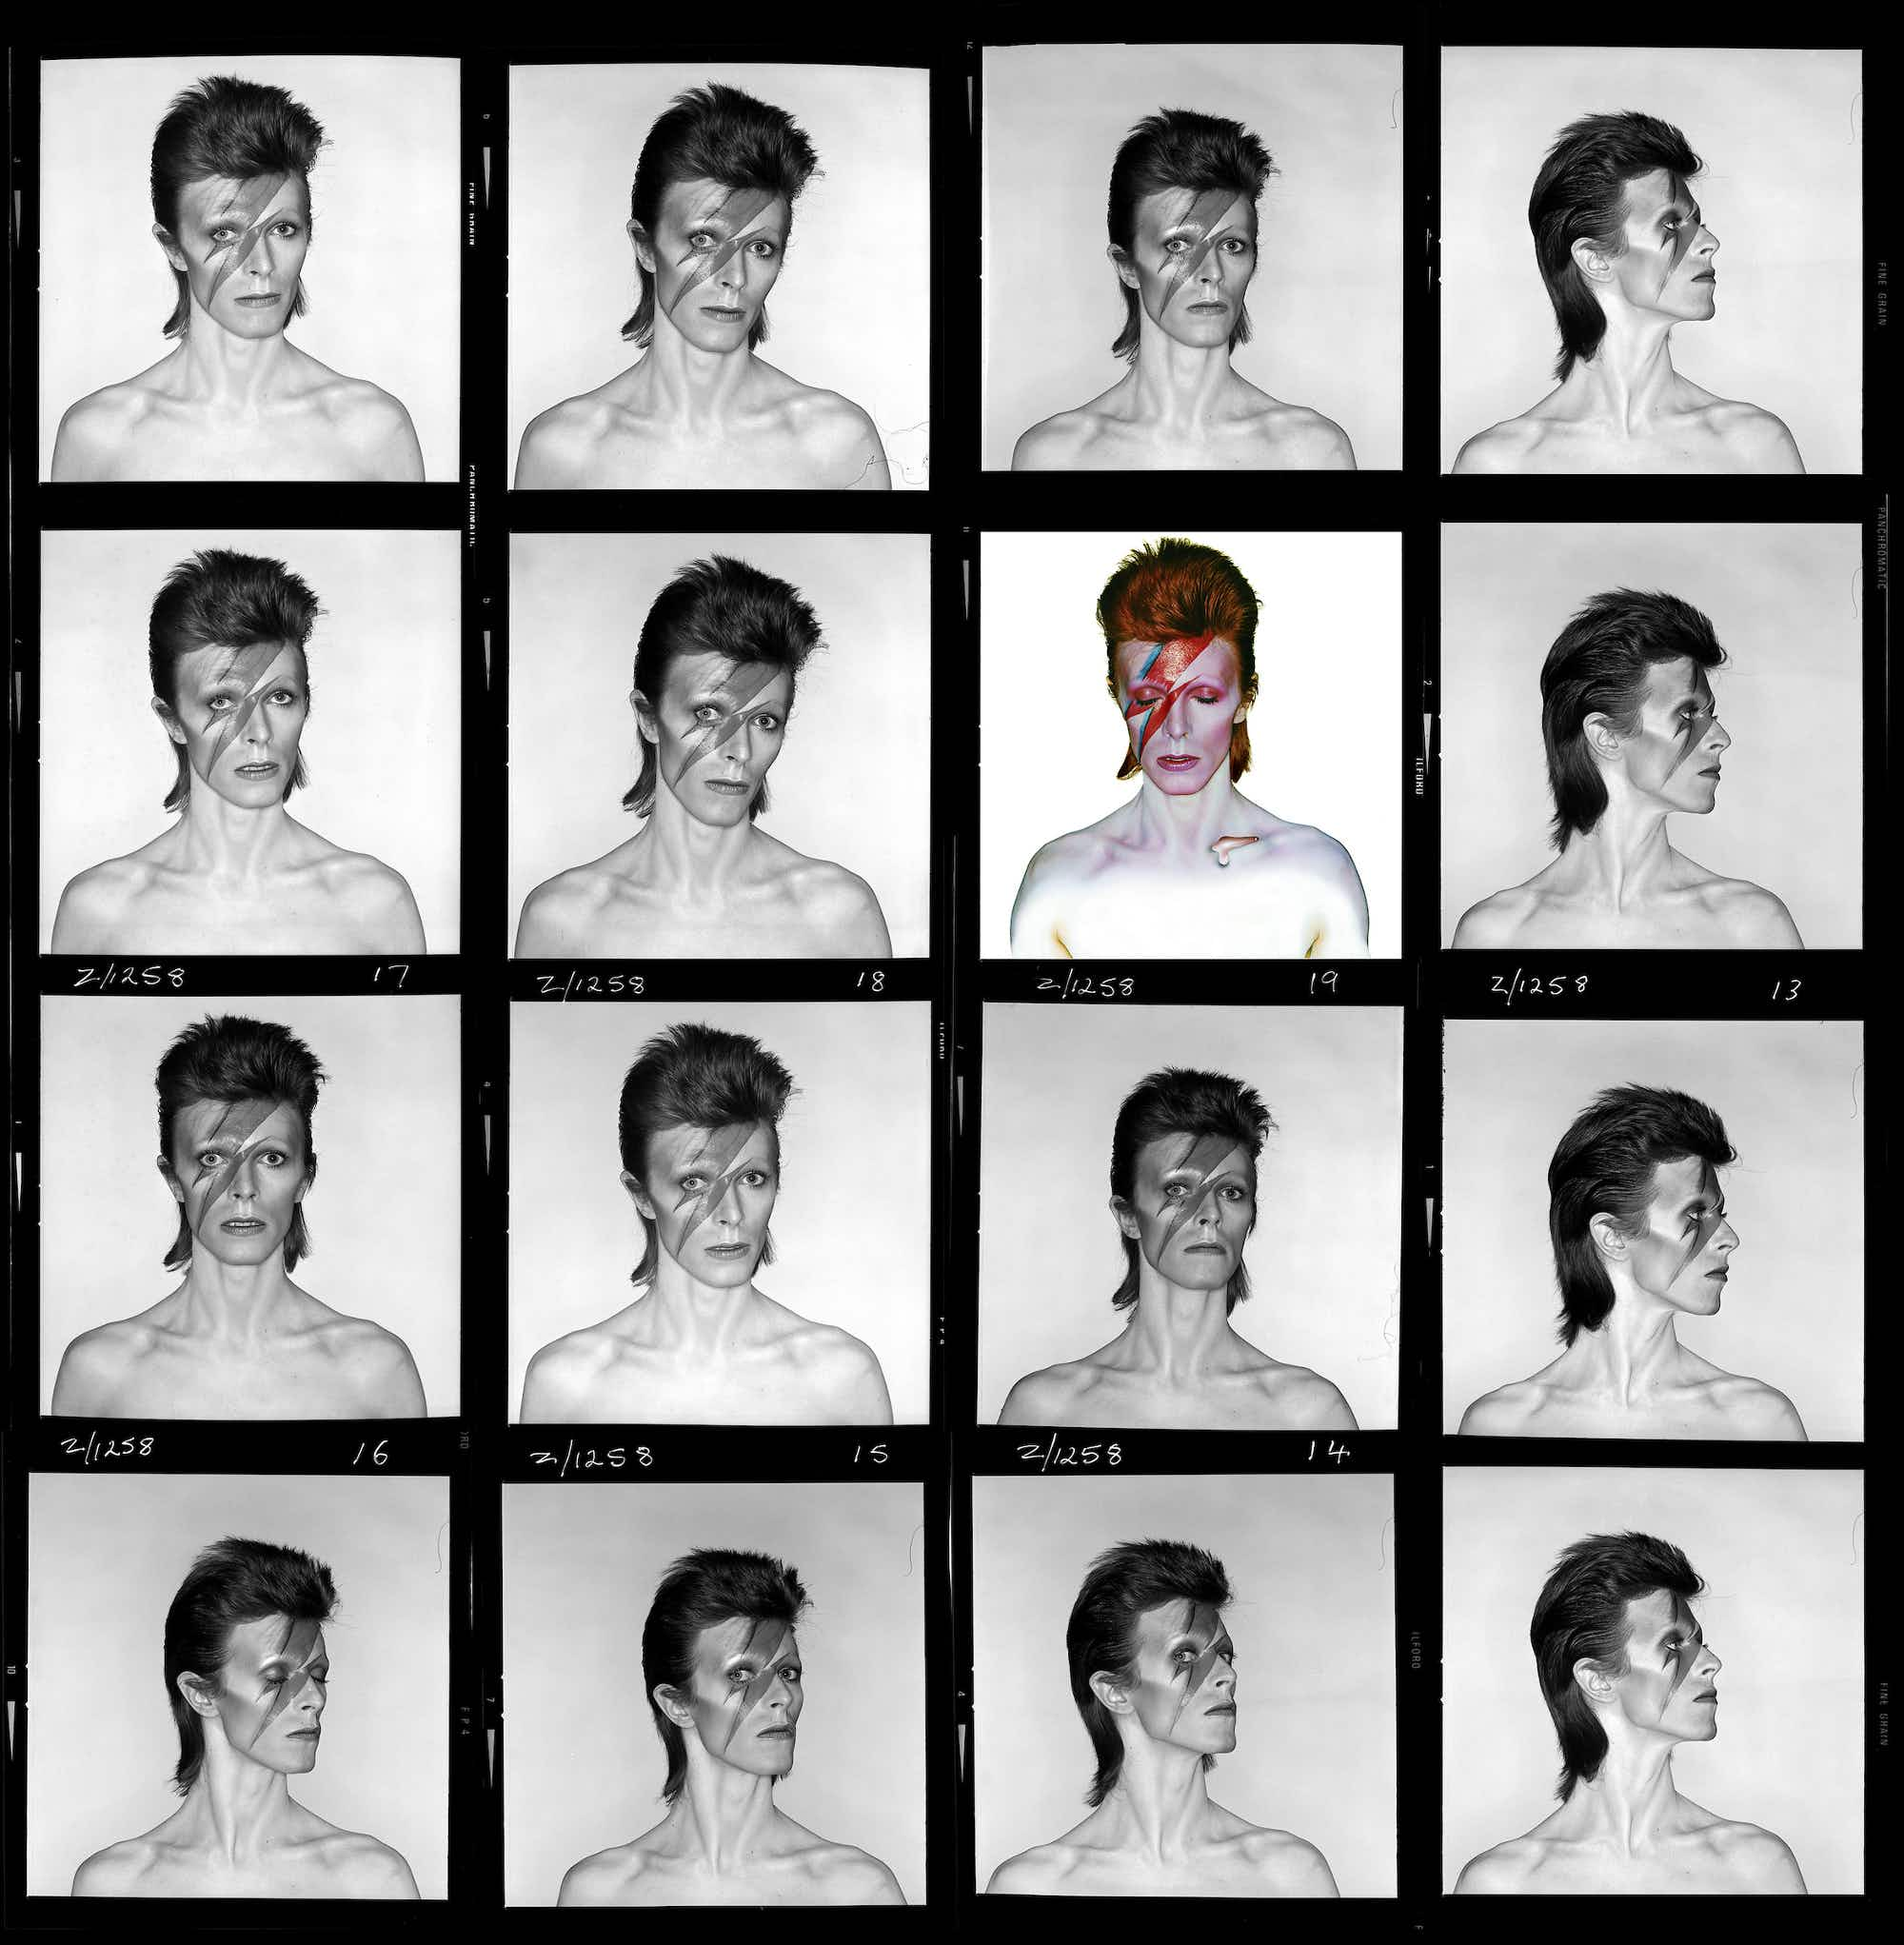 Record-breaking David Bowie retrospective opens at Brooklyn Museum